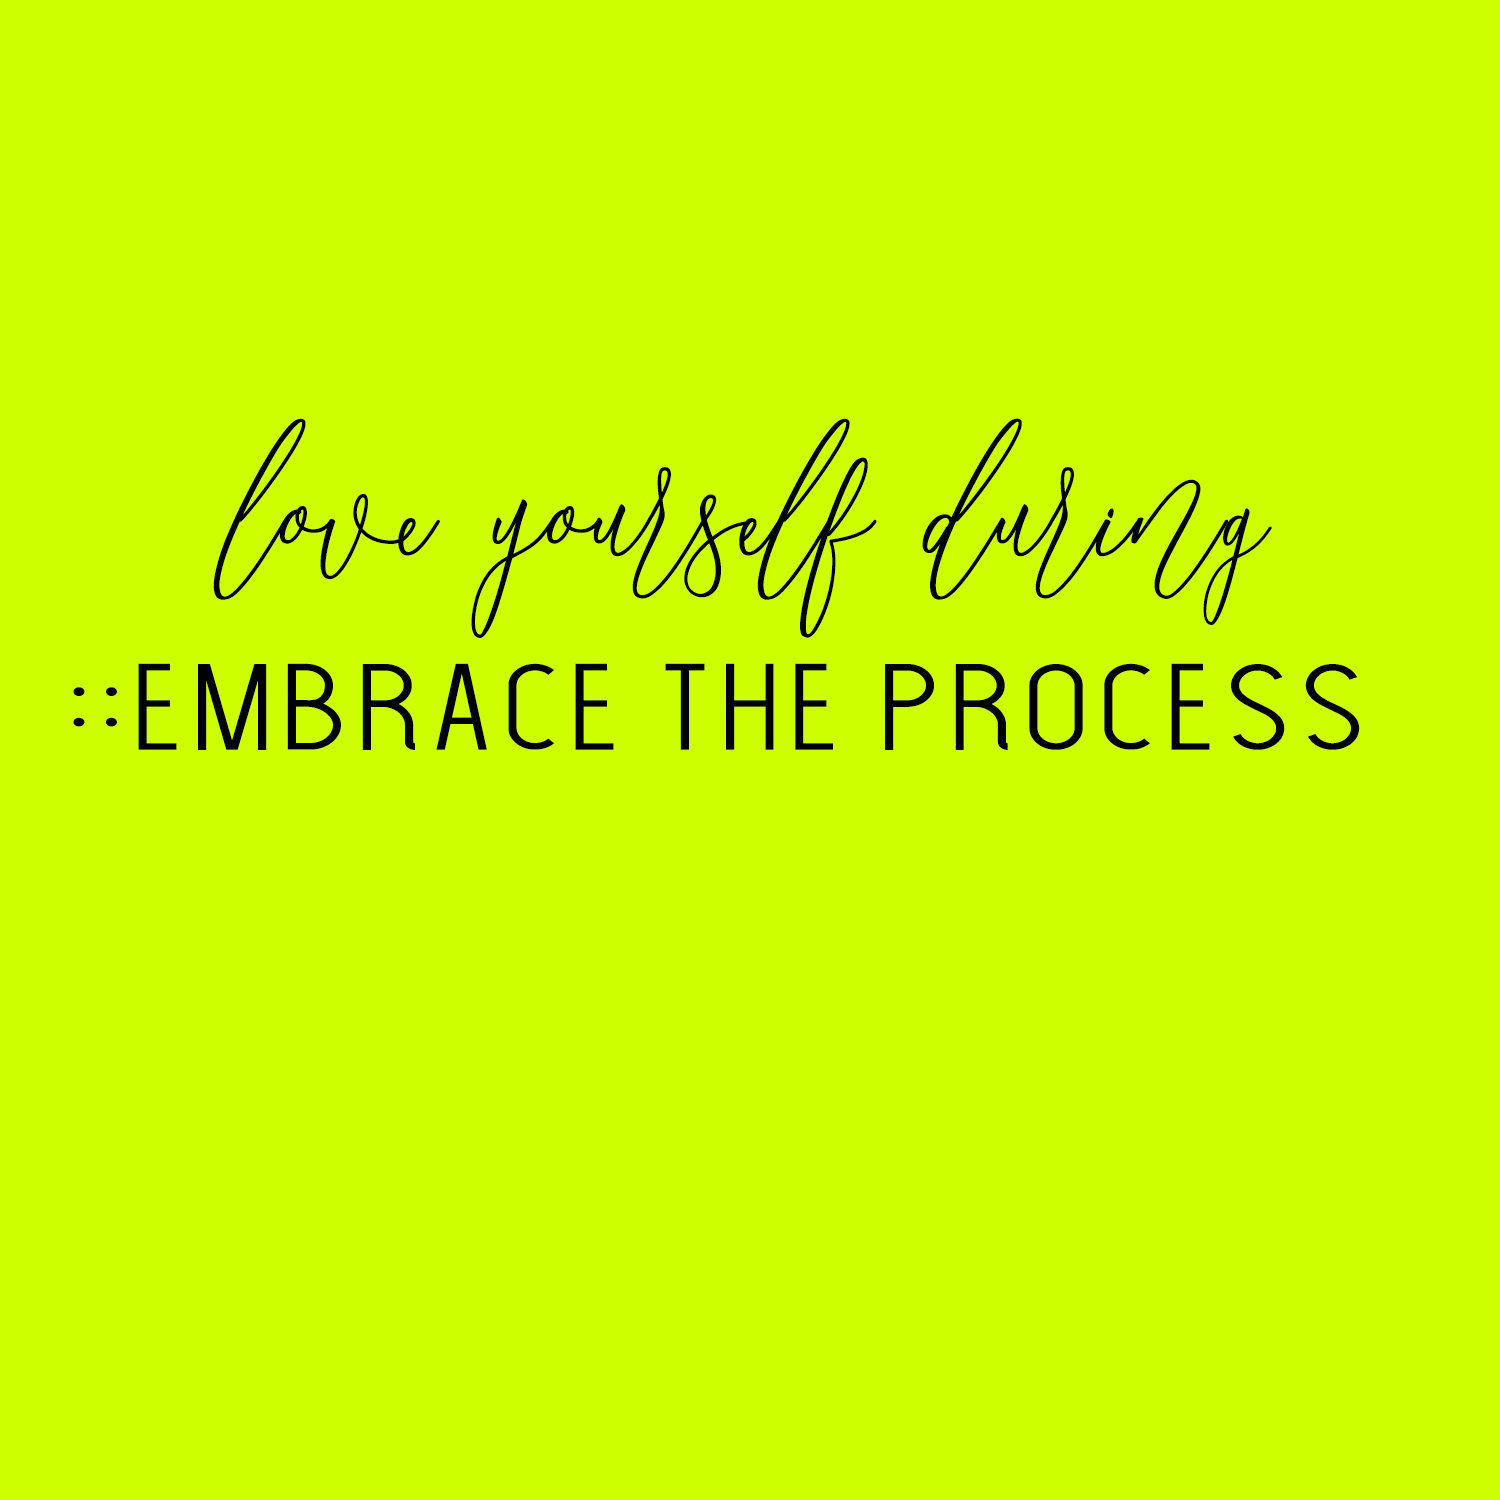 LYD Blog Landing Page Pic - Embrace the Process.jpg